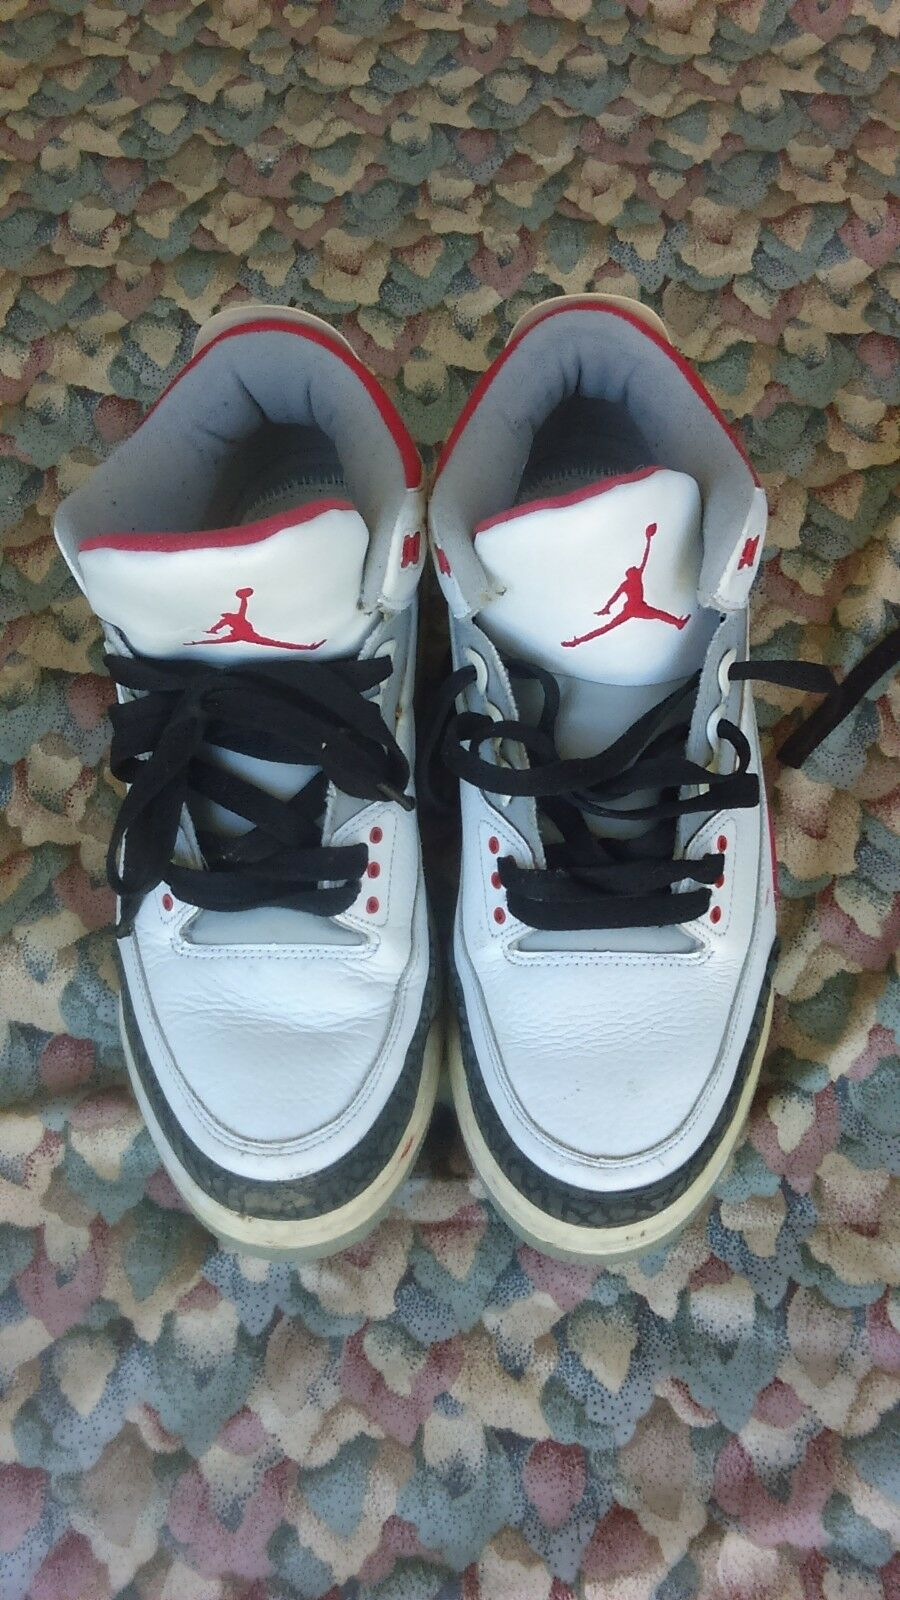 Nike Air Jordan 3 Retro White-Fire Red-Grey 2006 Release 136064-161 Comfortable New shoes for men and women, limited time discount